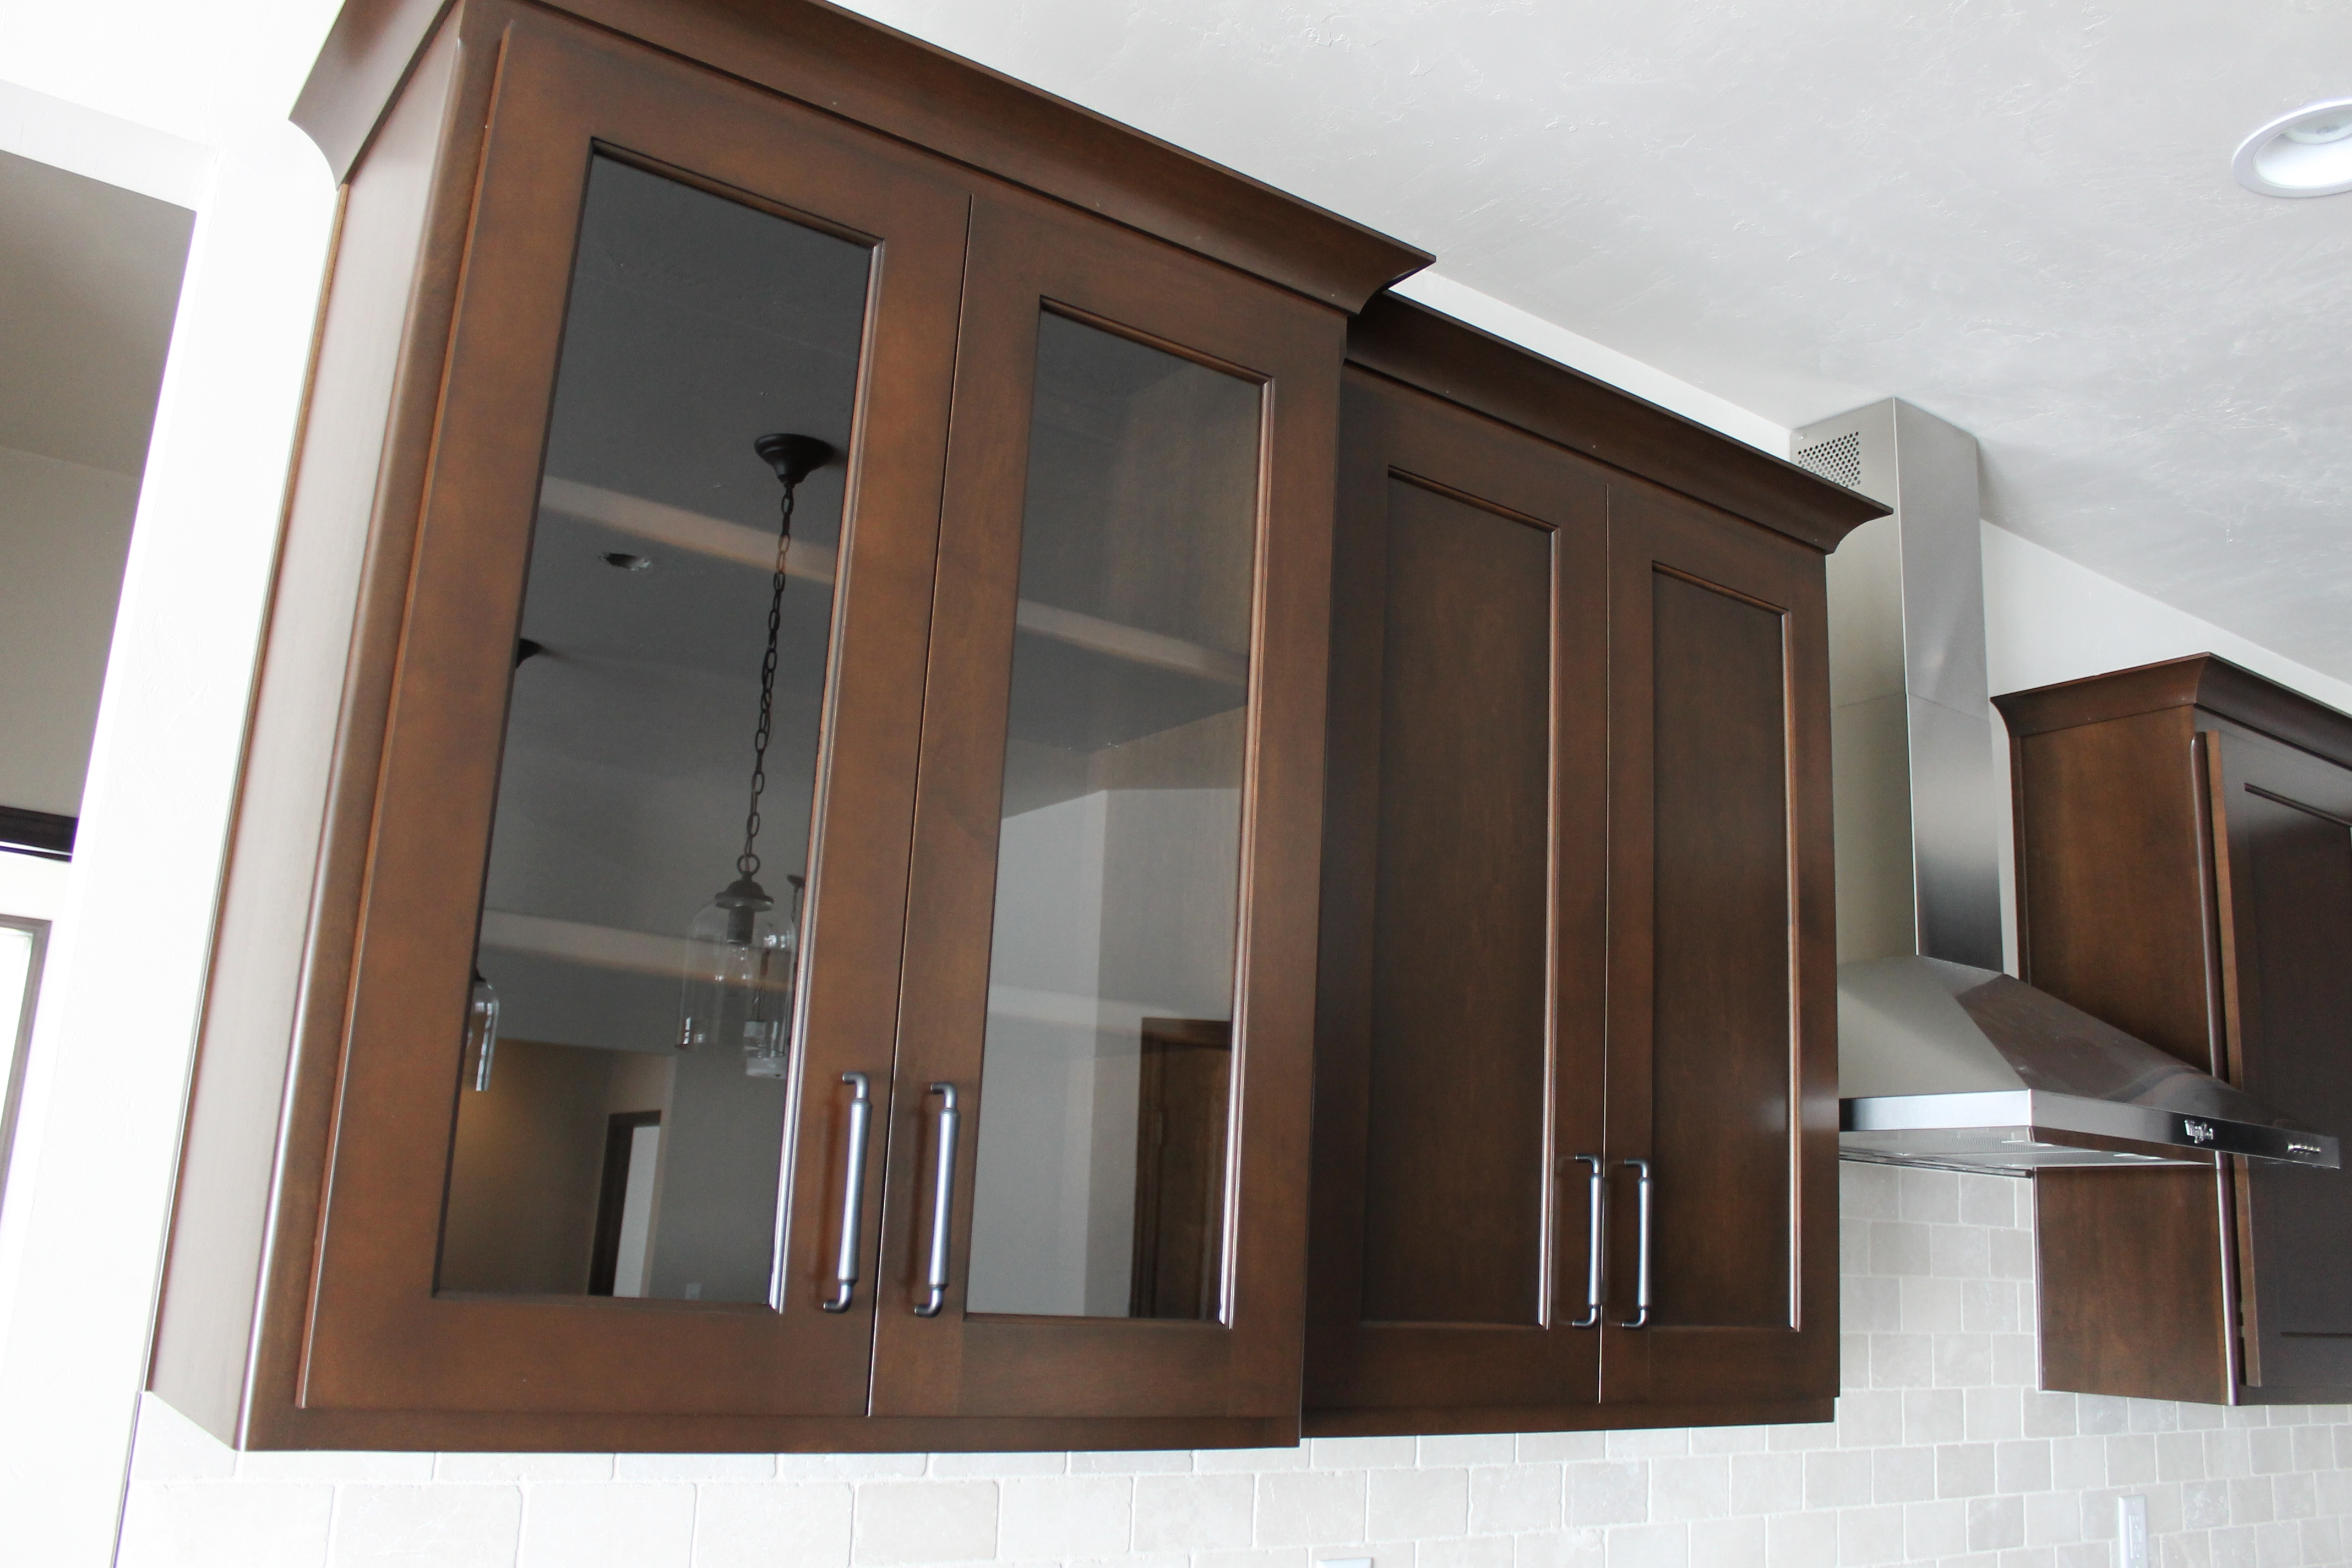 How To Choose Crown Molding For Cabinetry Katie Jane Interiors